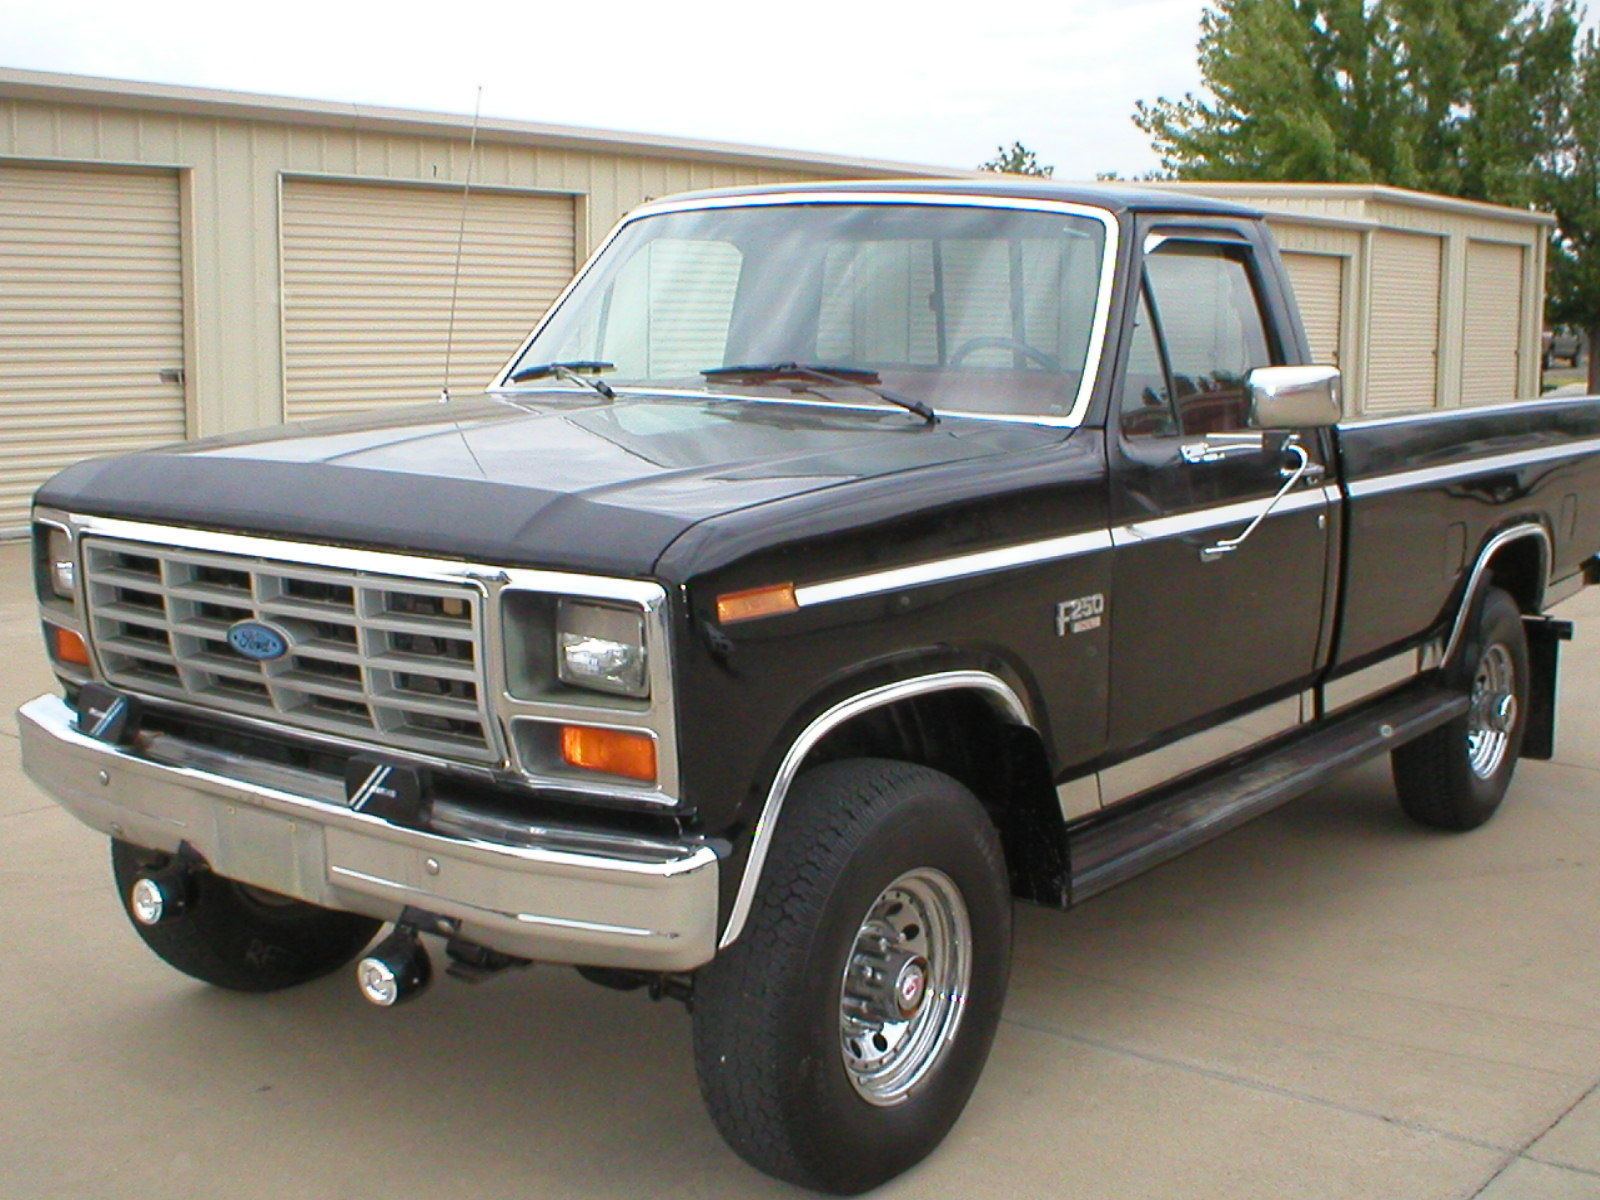 Ford F250 8 Foot Bed For Sale >> 1986 Ford F 250 Pickup 8 Foot Bed 7 5 V8 4 Wheel Drive 4 Speed Low